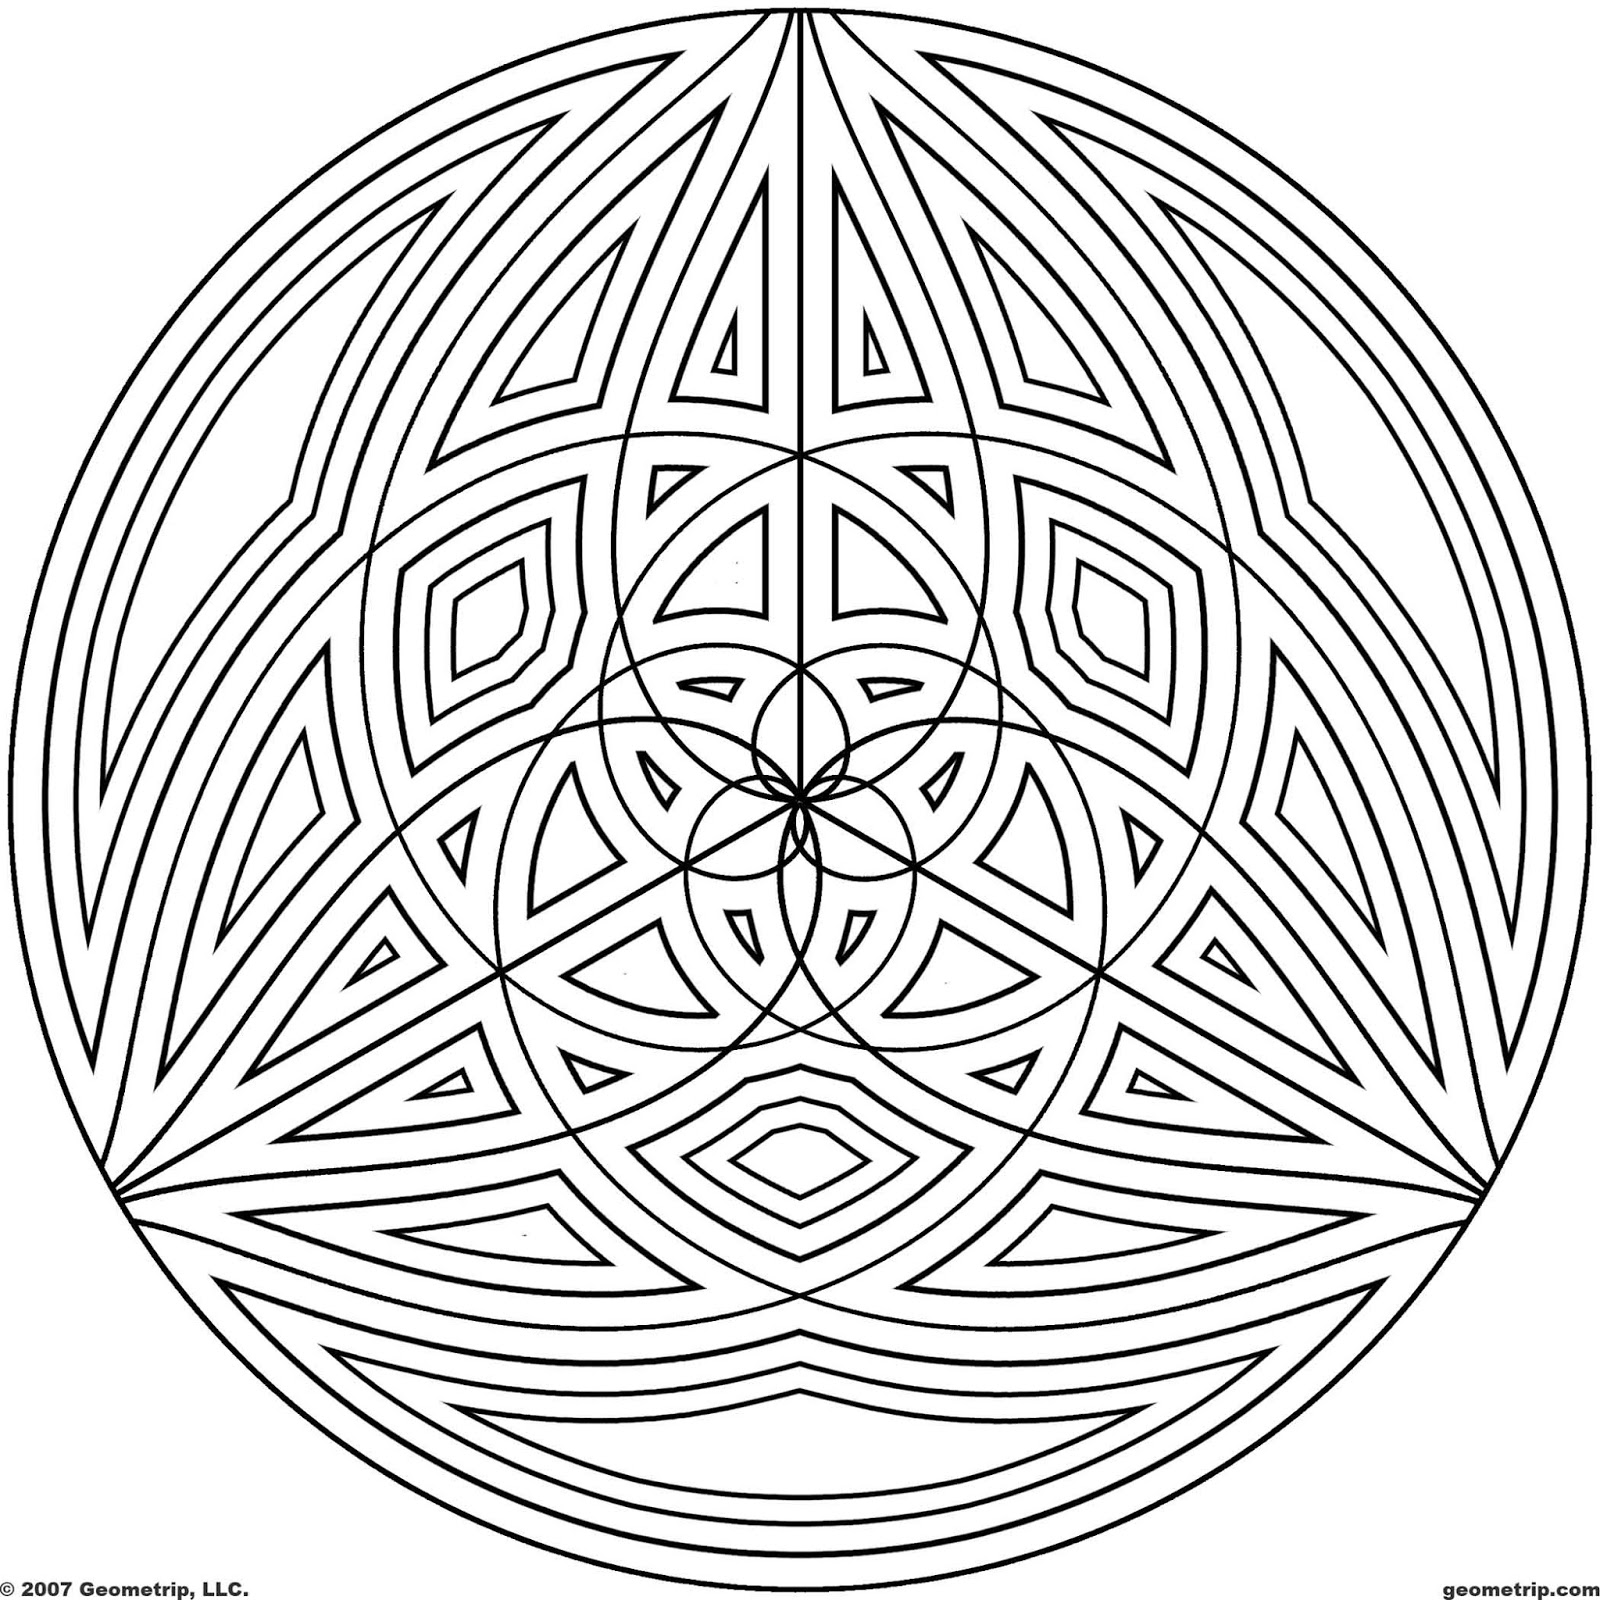 cool designs to color 50 trippy coloring pages designs to cool color